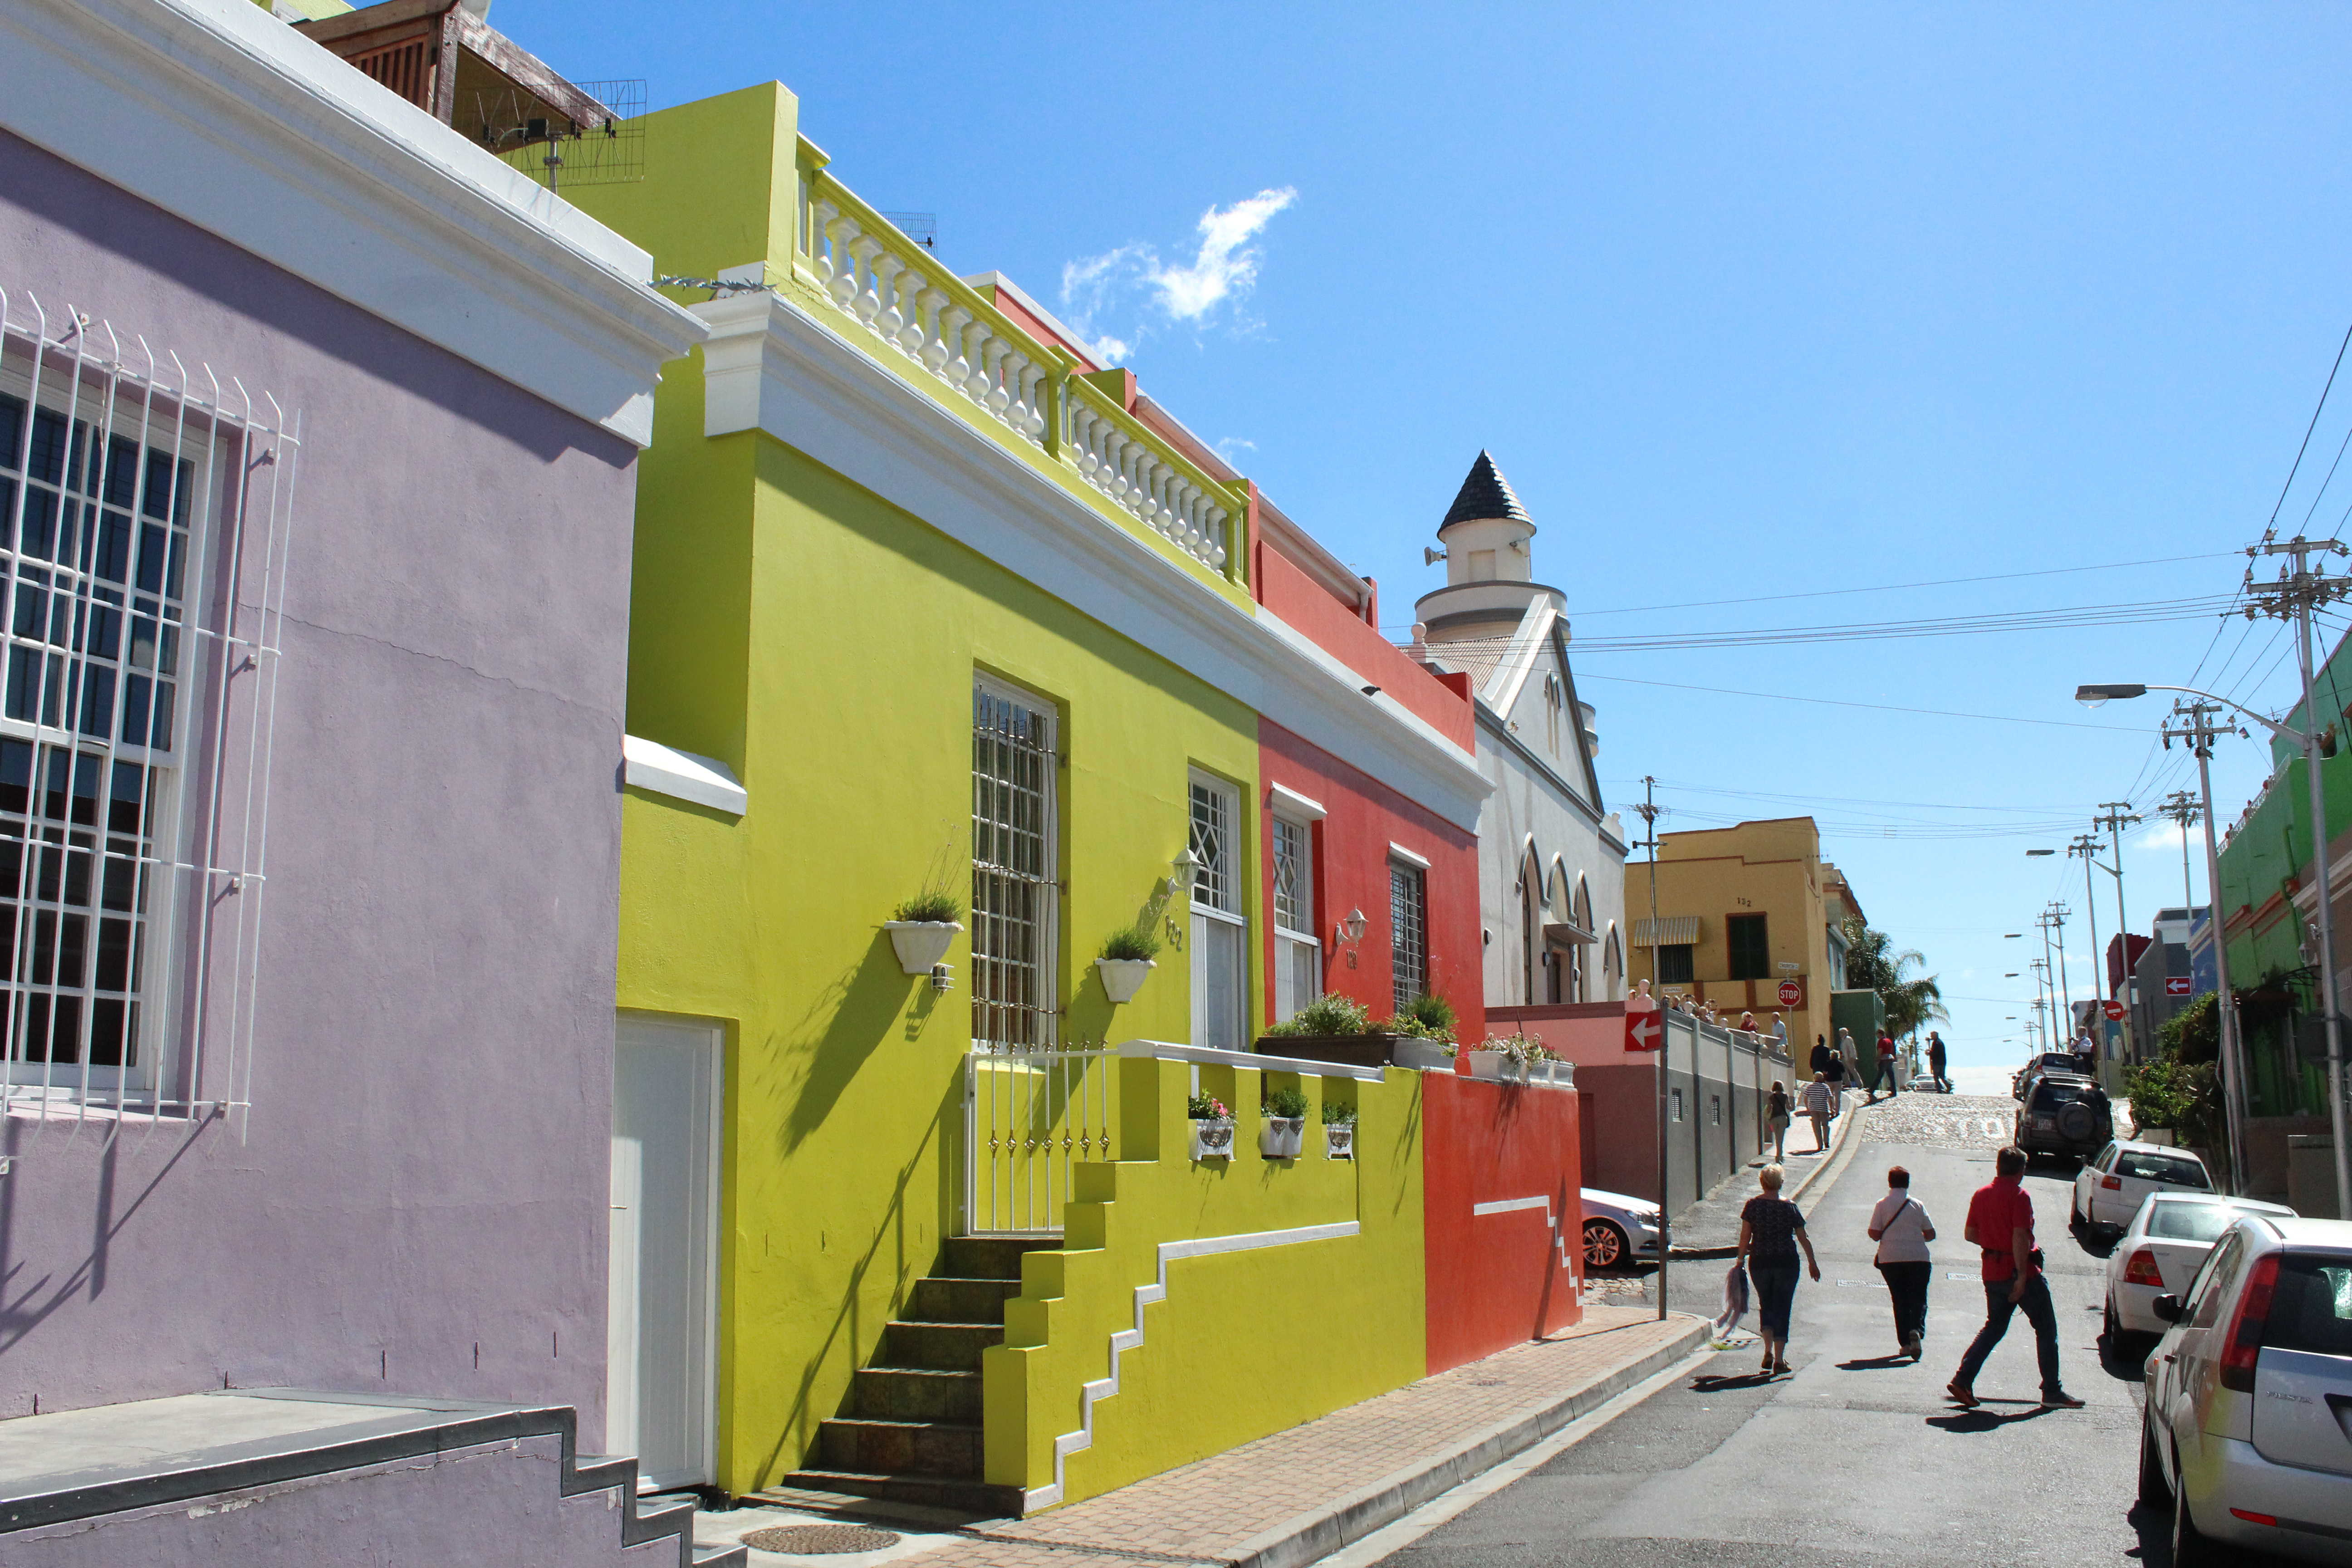 Have You Heard Of BoKaap Bo Kaap Is An Afrikaans Word Means On Top And Cape Which Makes Sense Because Get Wonderful Views From Here